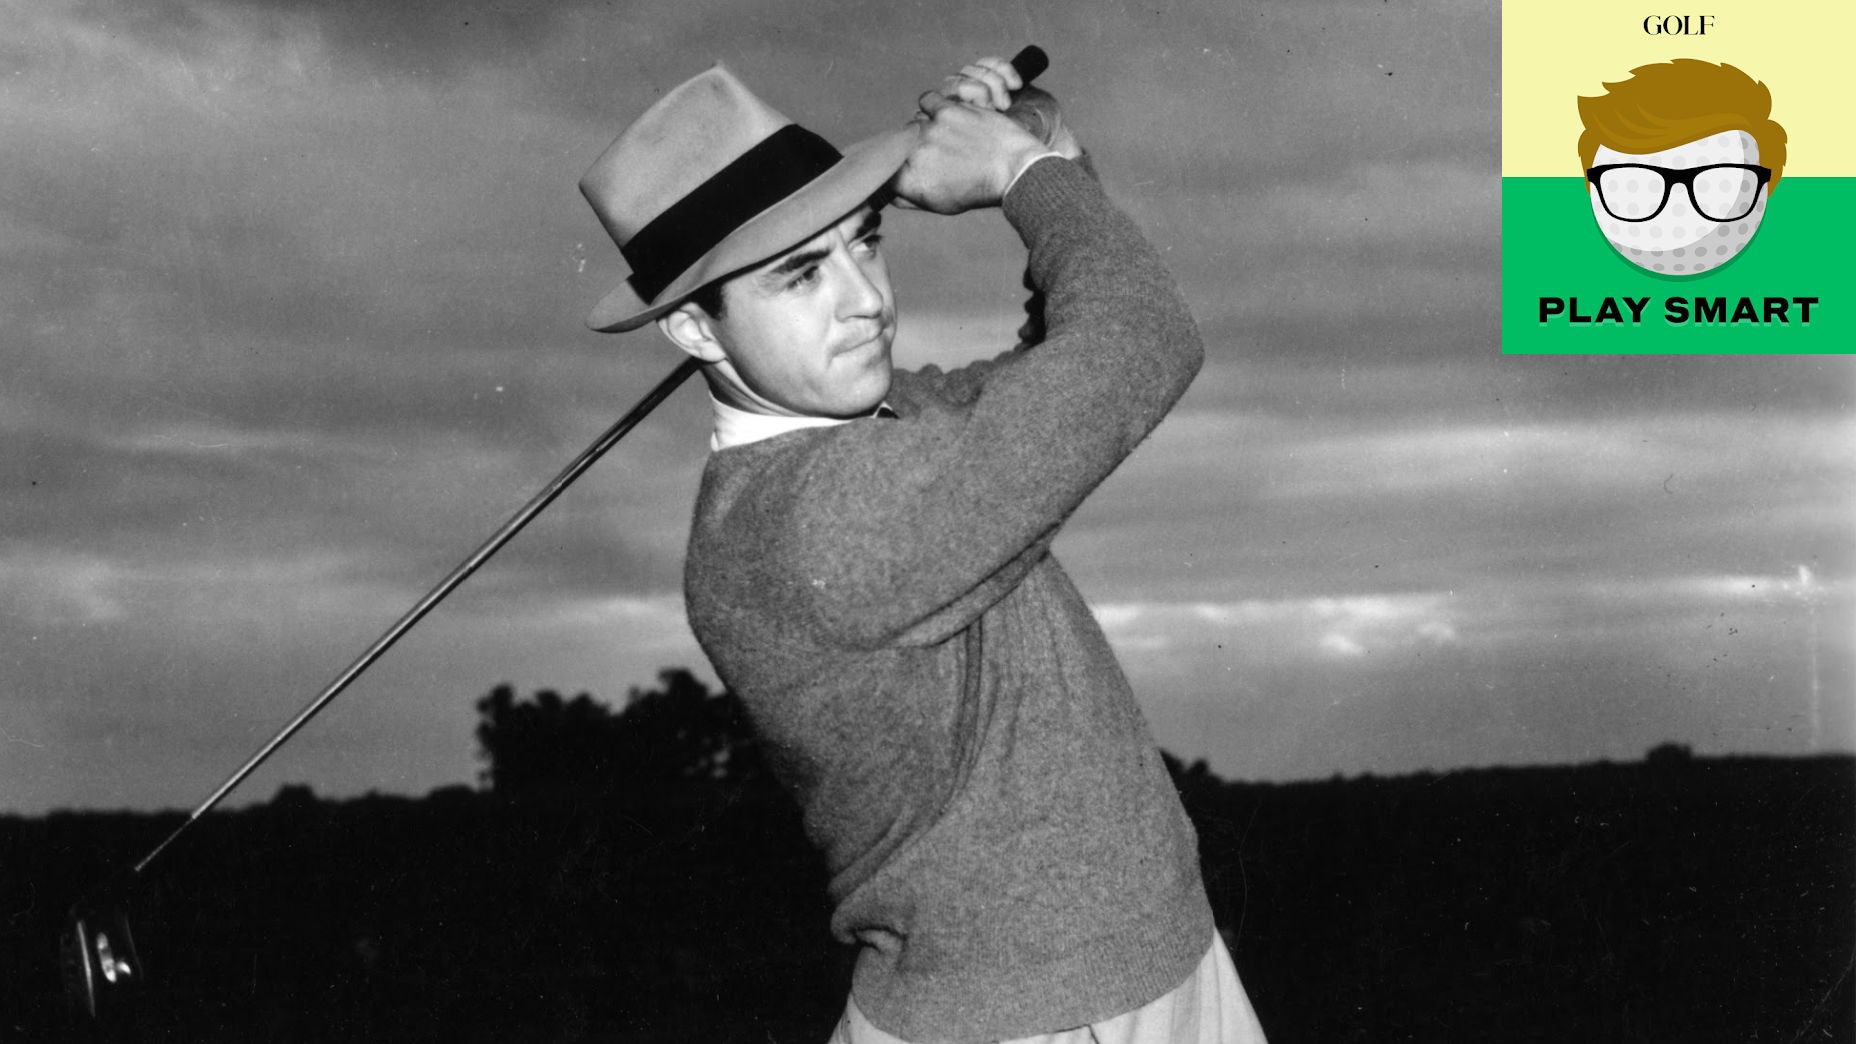 Sam Snead: This is how to get more 'firepower' in your golf swing